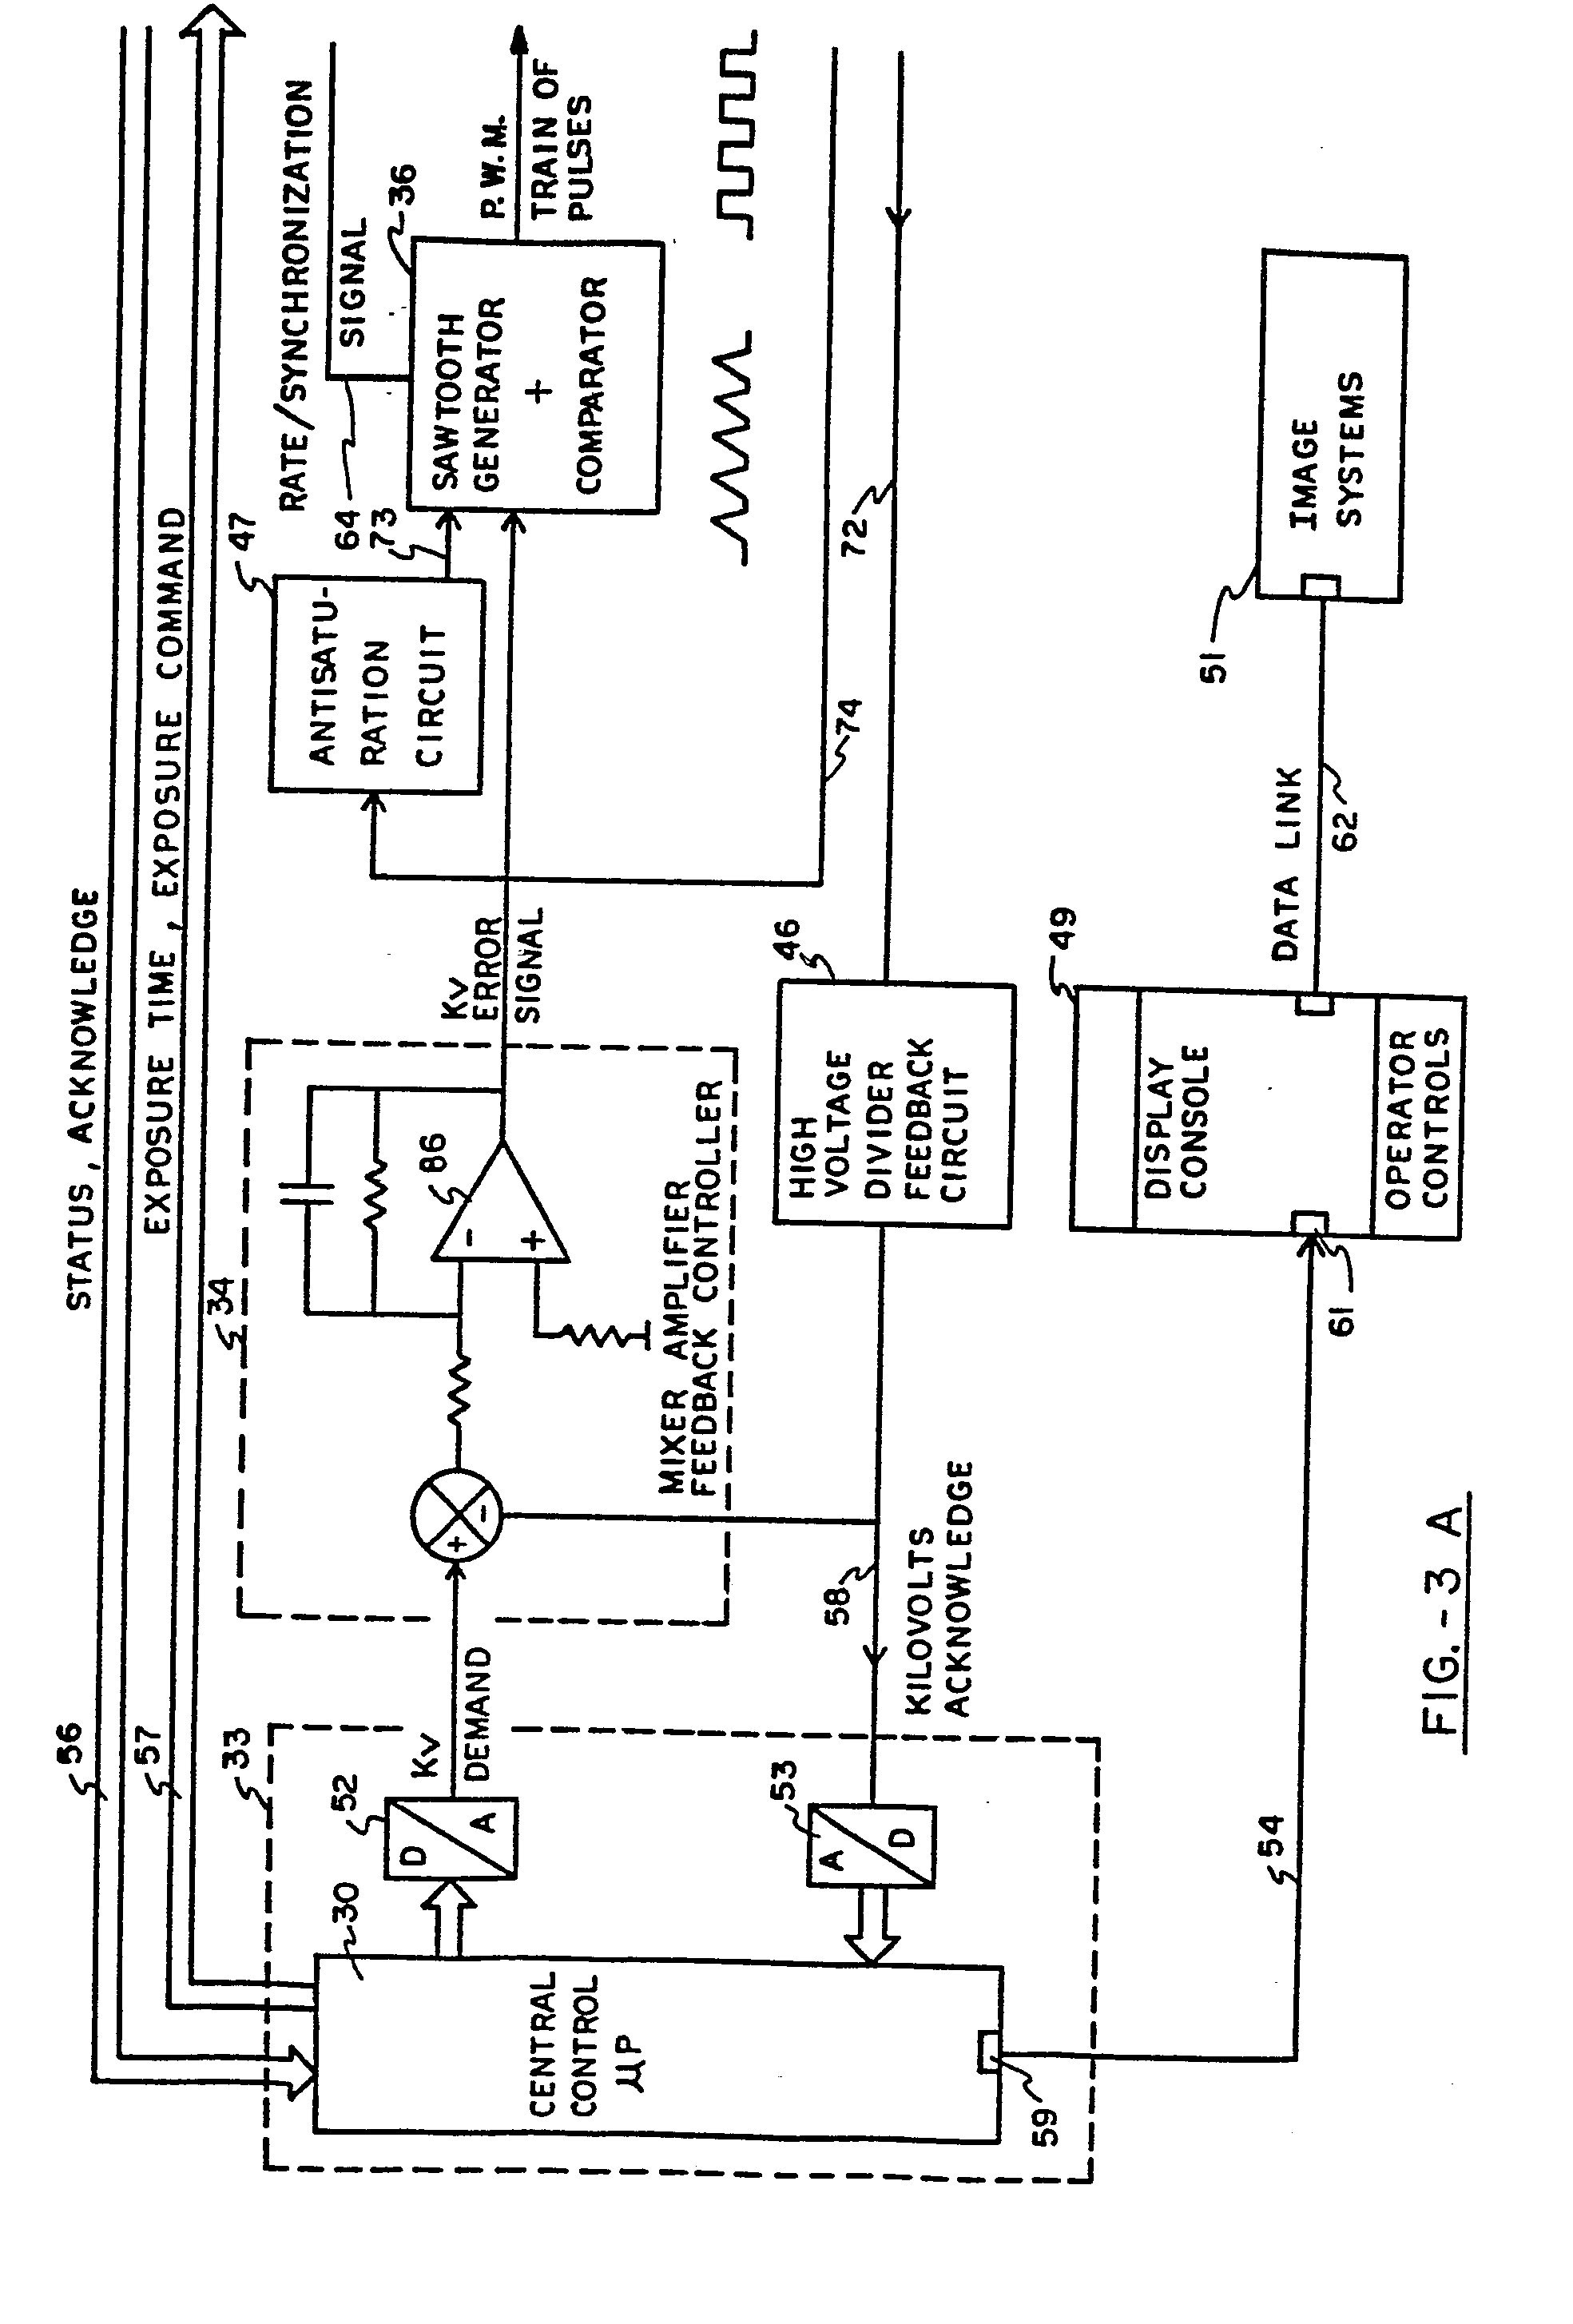 X Ray Circuit Diagram Labeled